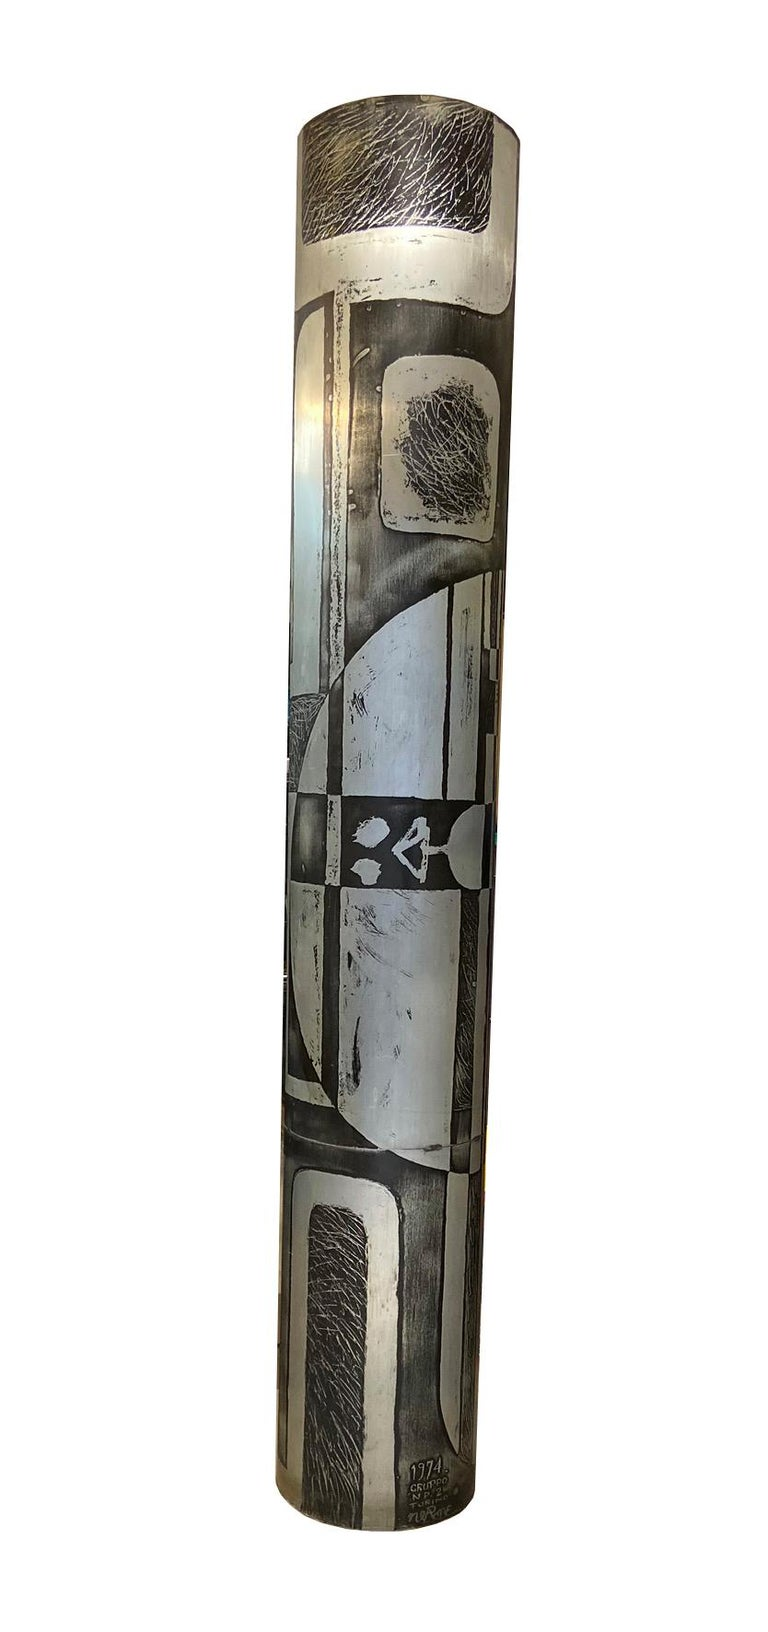 Nerone and Patuzzi, NP2 model, large column-shaped zinc engraving Signed: Gruppo NP.2, Turin 1974 Nero, NP2 production, circa 1974, Italy. Measures: Height 2.38 m, diameter 44 cm. Giovanni